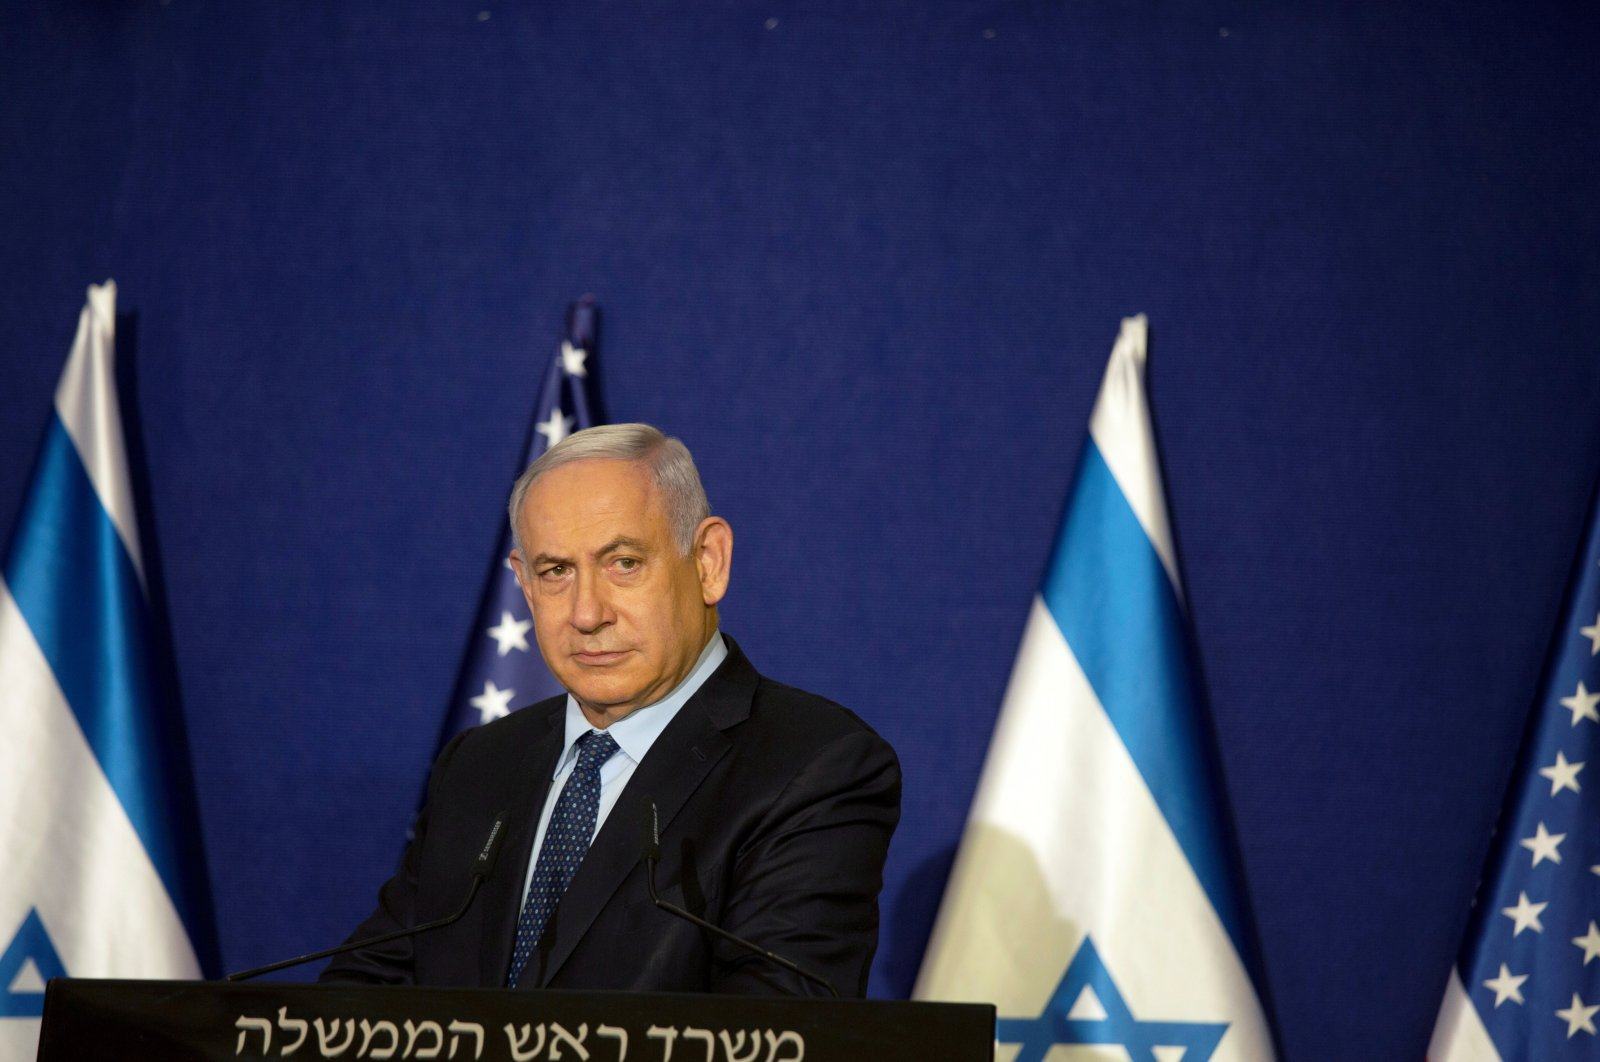 Israeli Prime Minister Benjamin Netanyahu listens during a joint statement with U.S. Secretary of State Mike Pompeo, Jerusalem, Nov. 19, 2020. (REUTERS Photo)